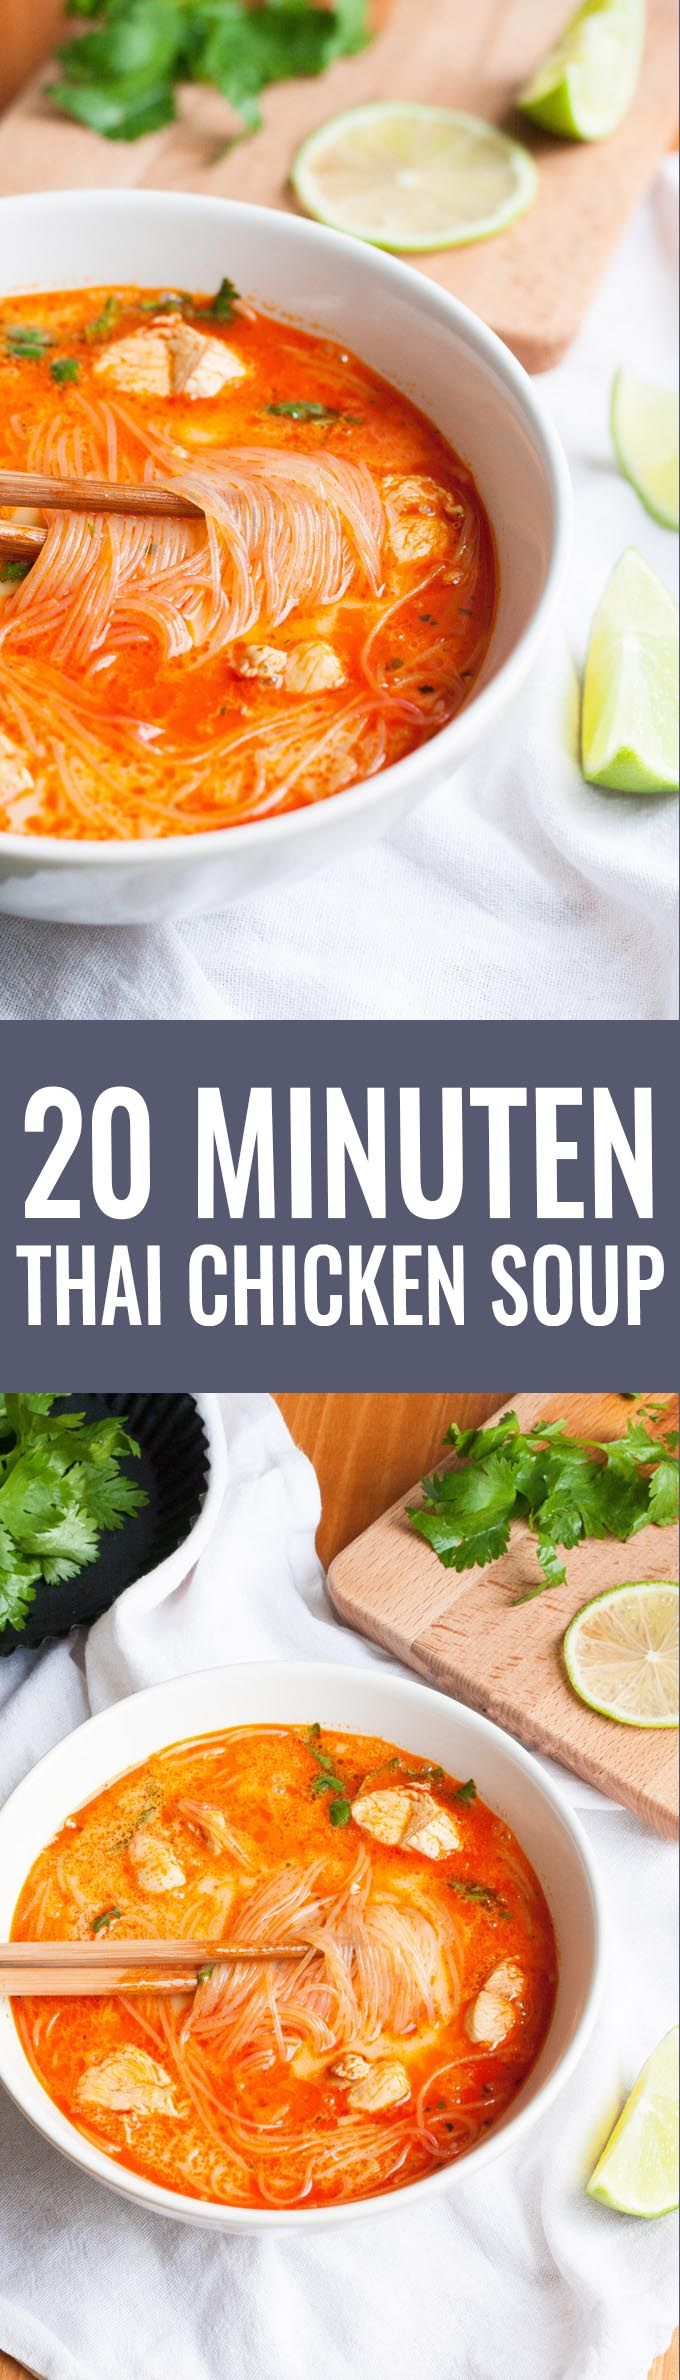 20 Minuten Thai Chicken Soup. SO gut - Kochkarussell.com